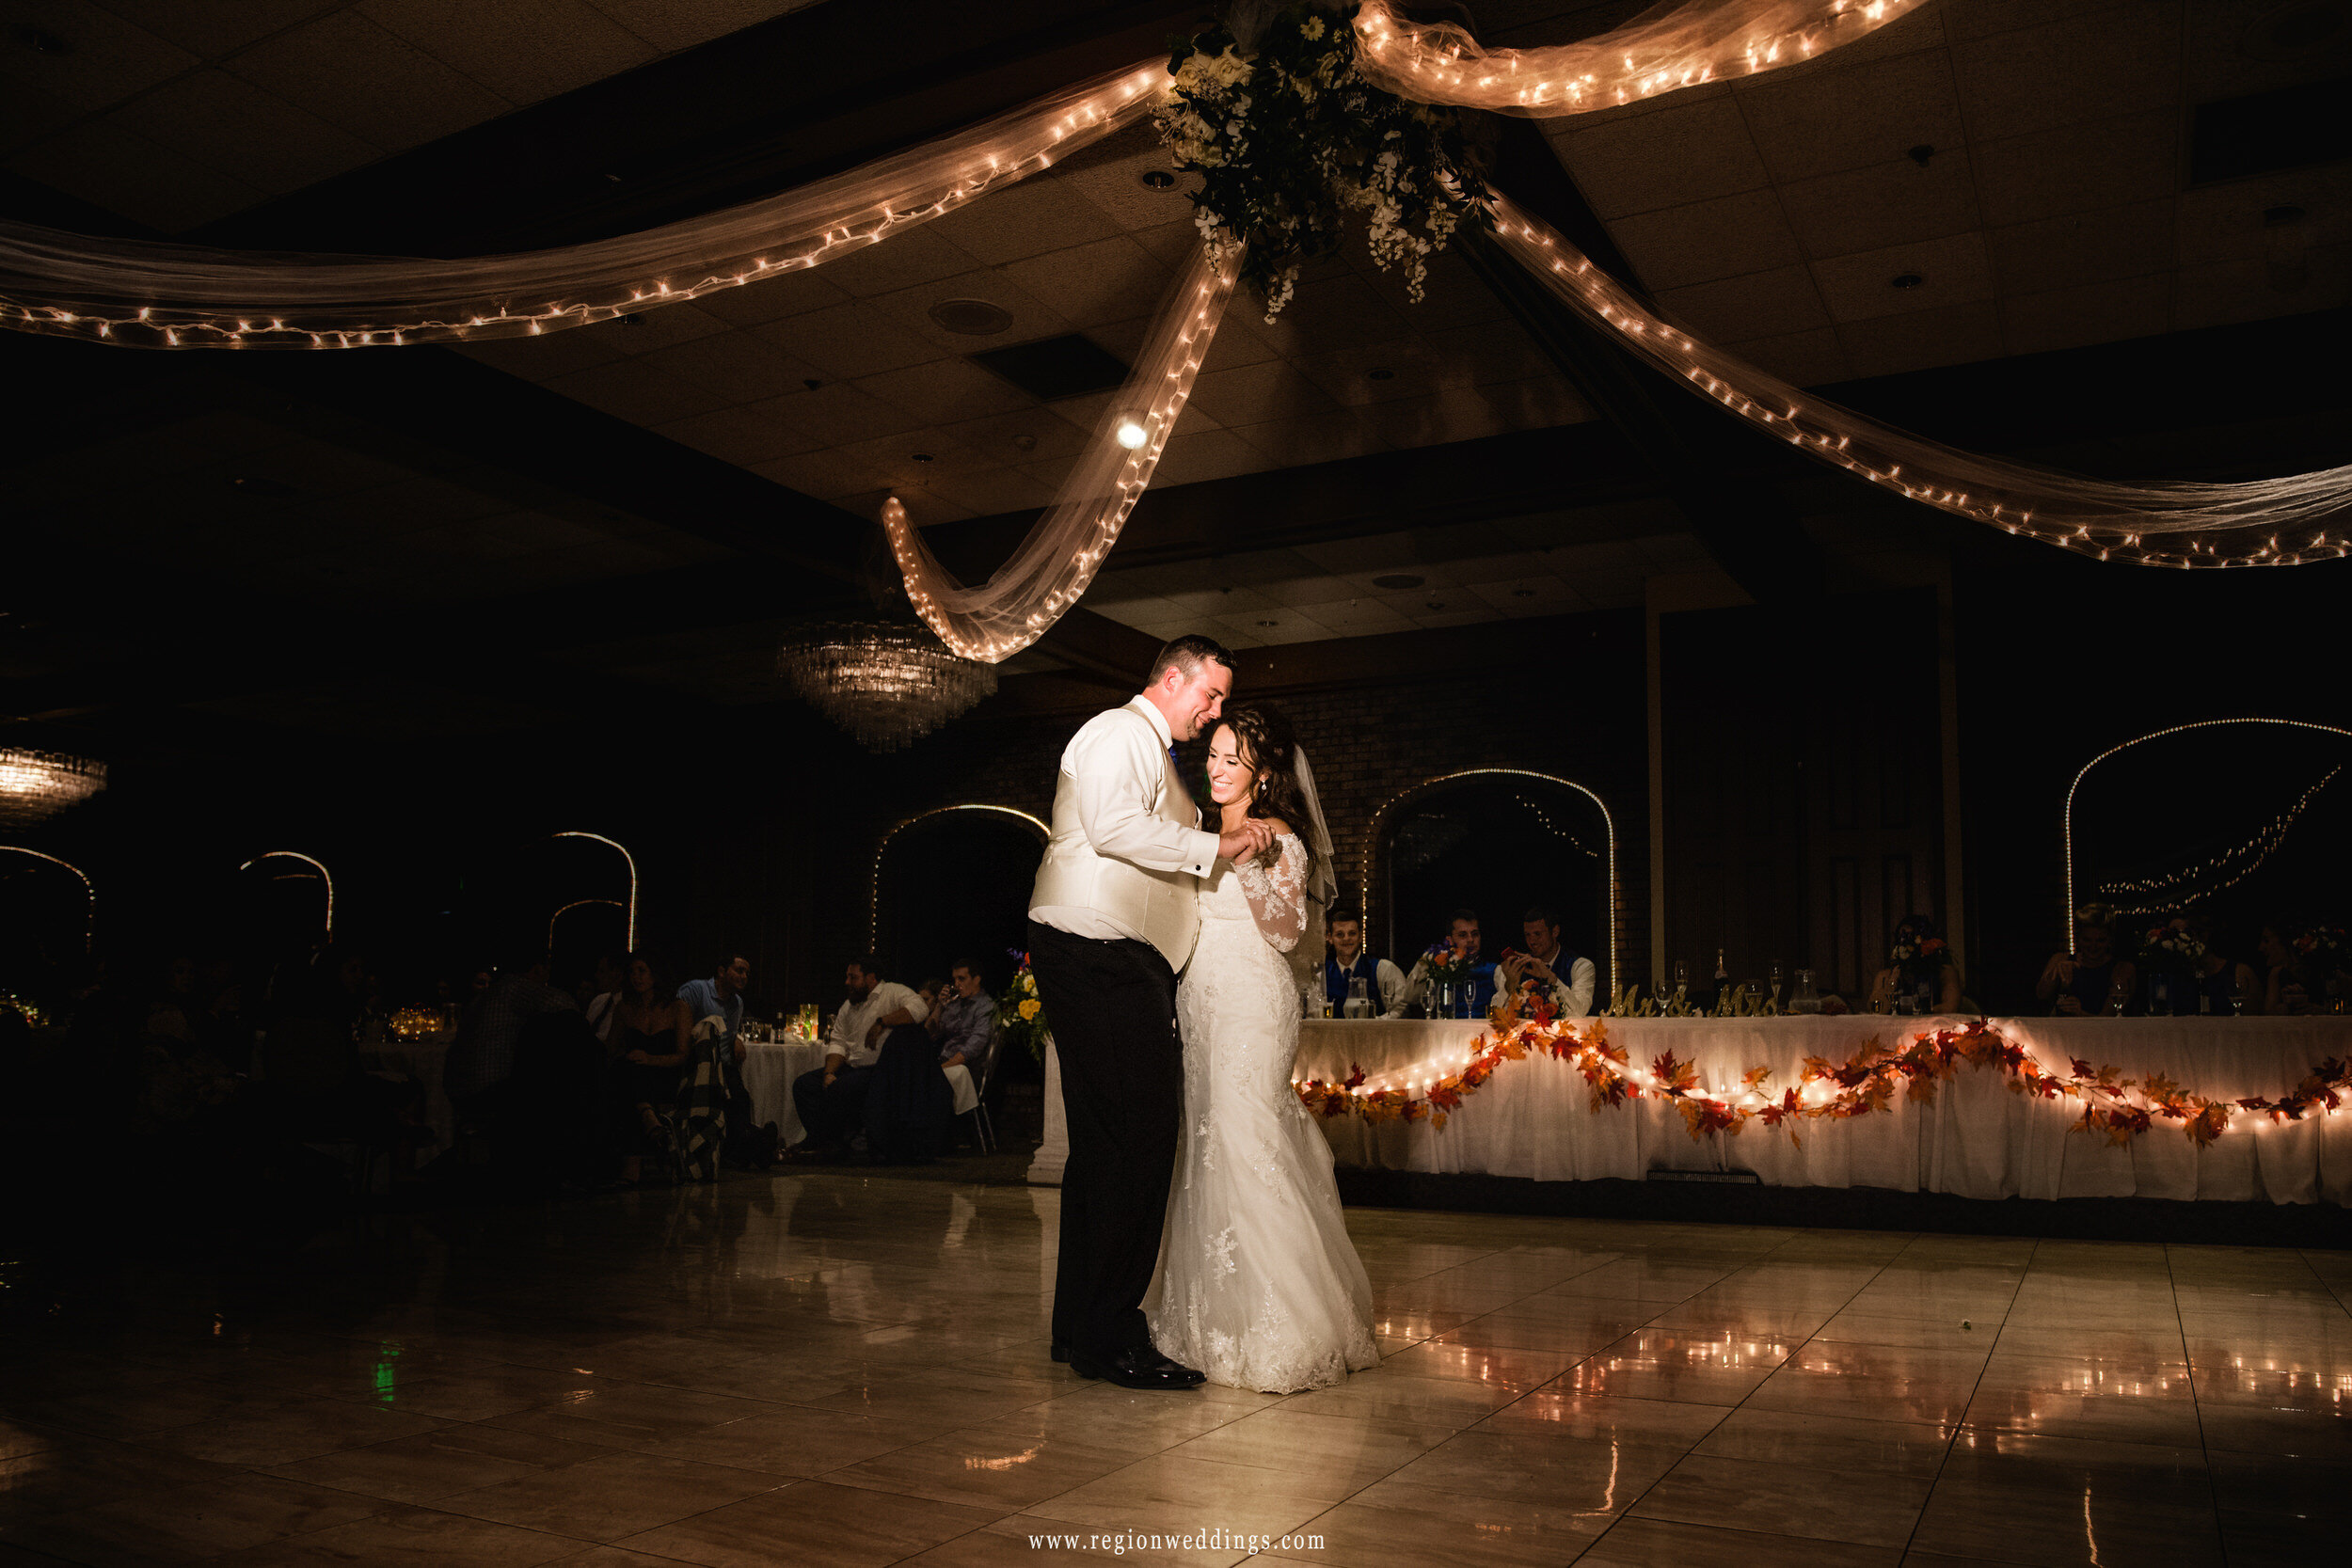 First dance for the bride and groom during a Fall wedding reception.